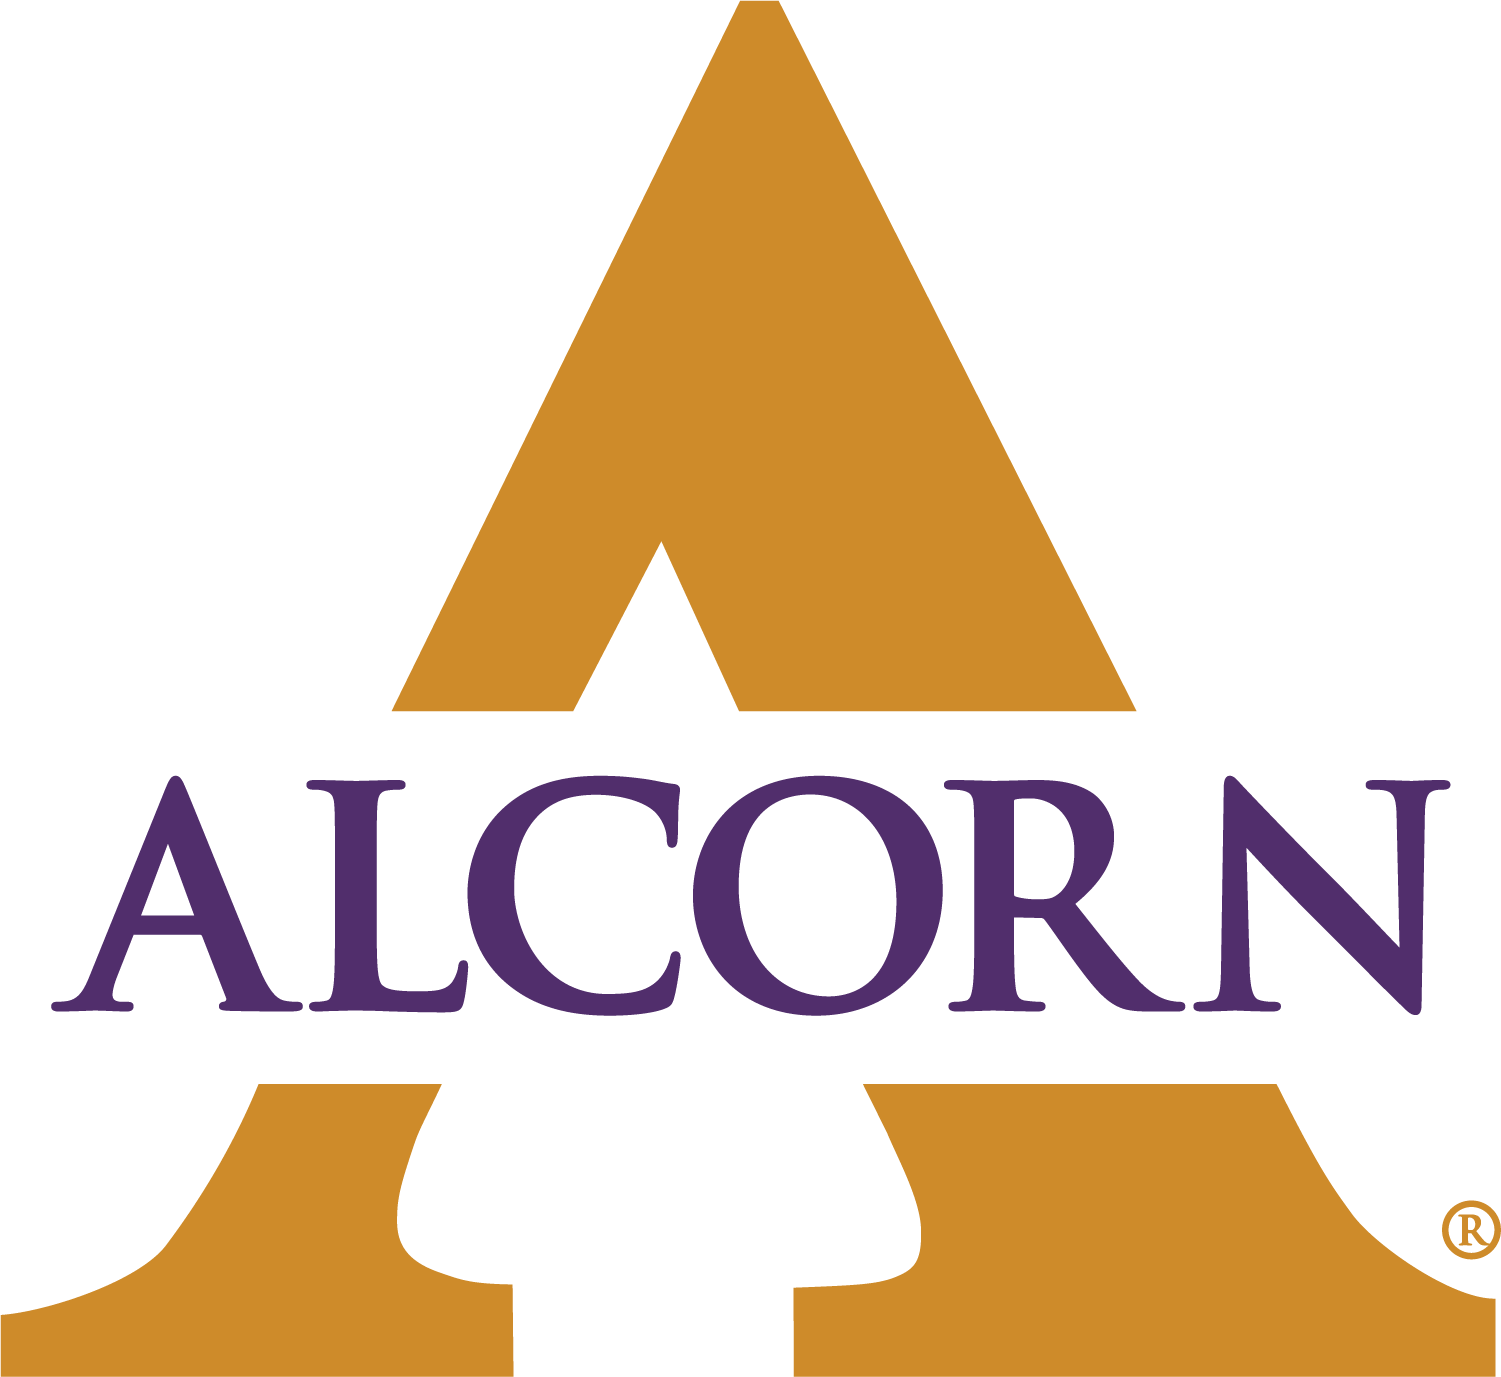 (Alcorn A Logo Mark)